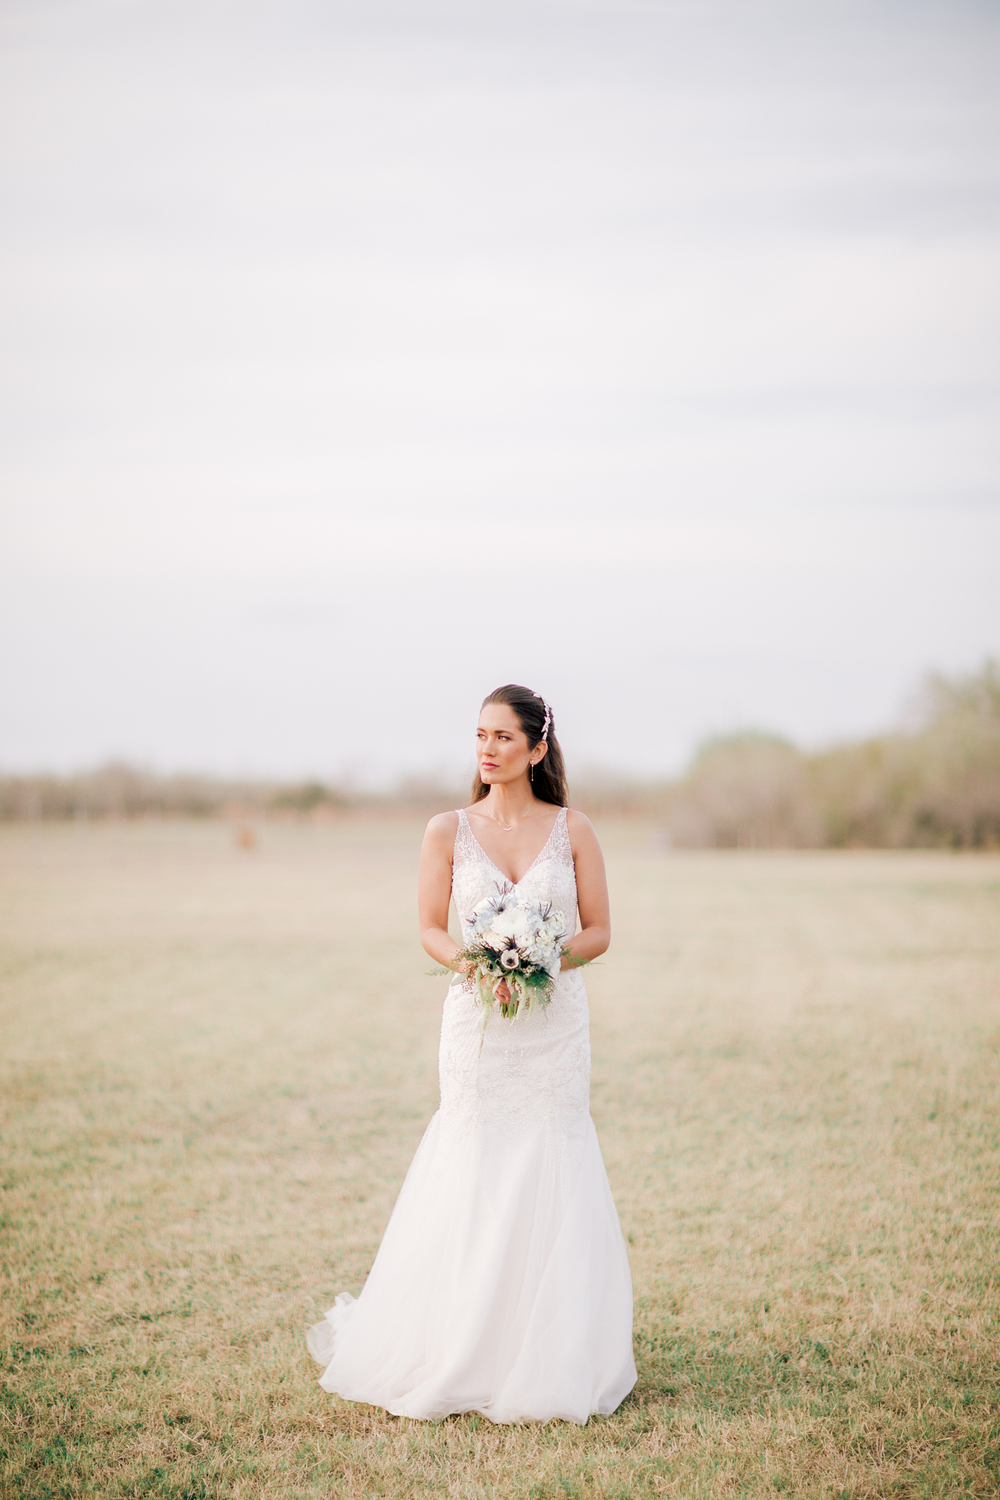 alaa-marzouk-photography-rgvweddingphotographer-rio-grande-valley-mathis-wedding-bridal-bride-san-antonio-portrait-weddings-mcallen-123.jpg